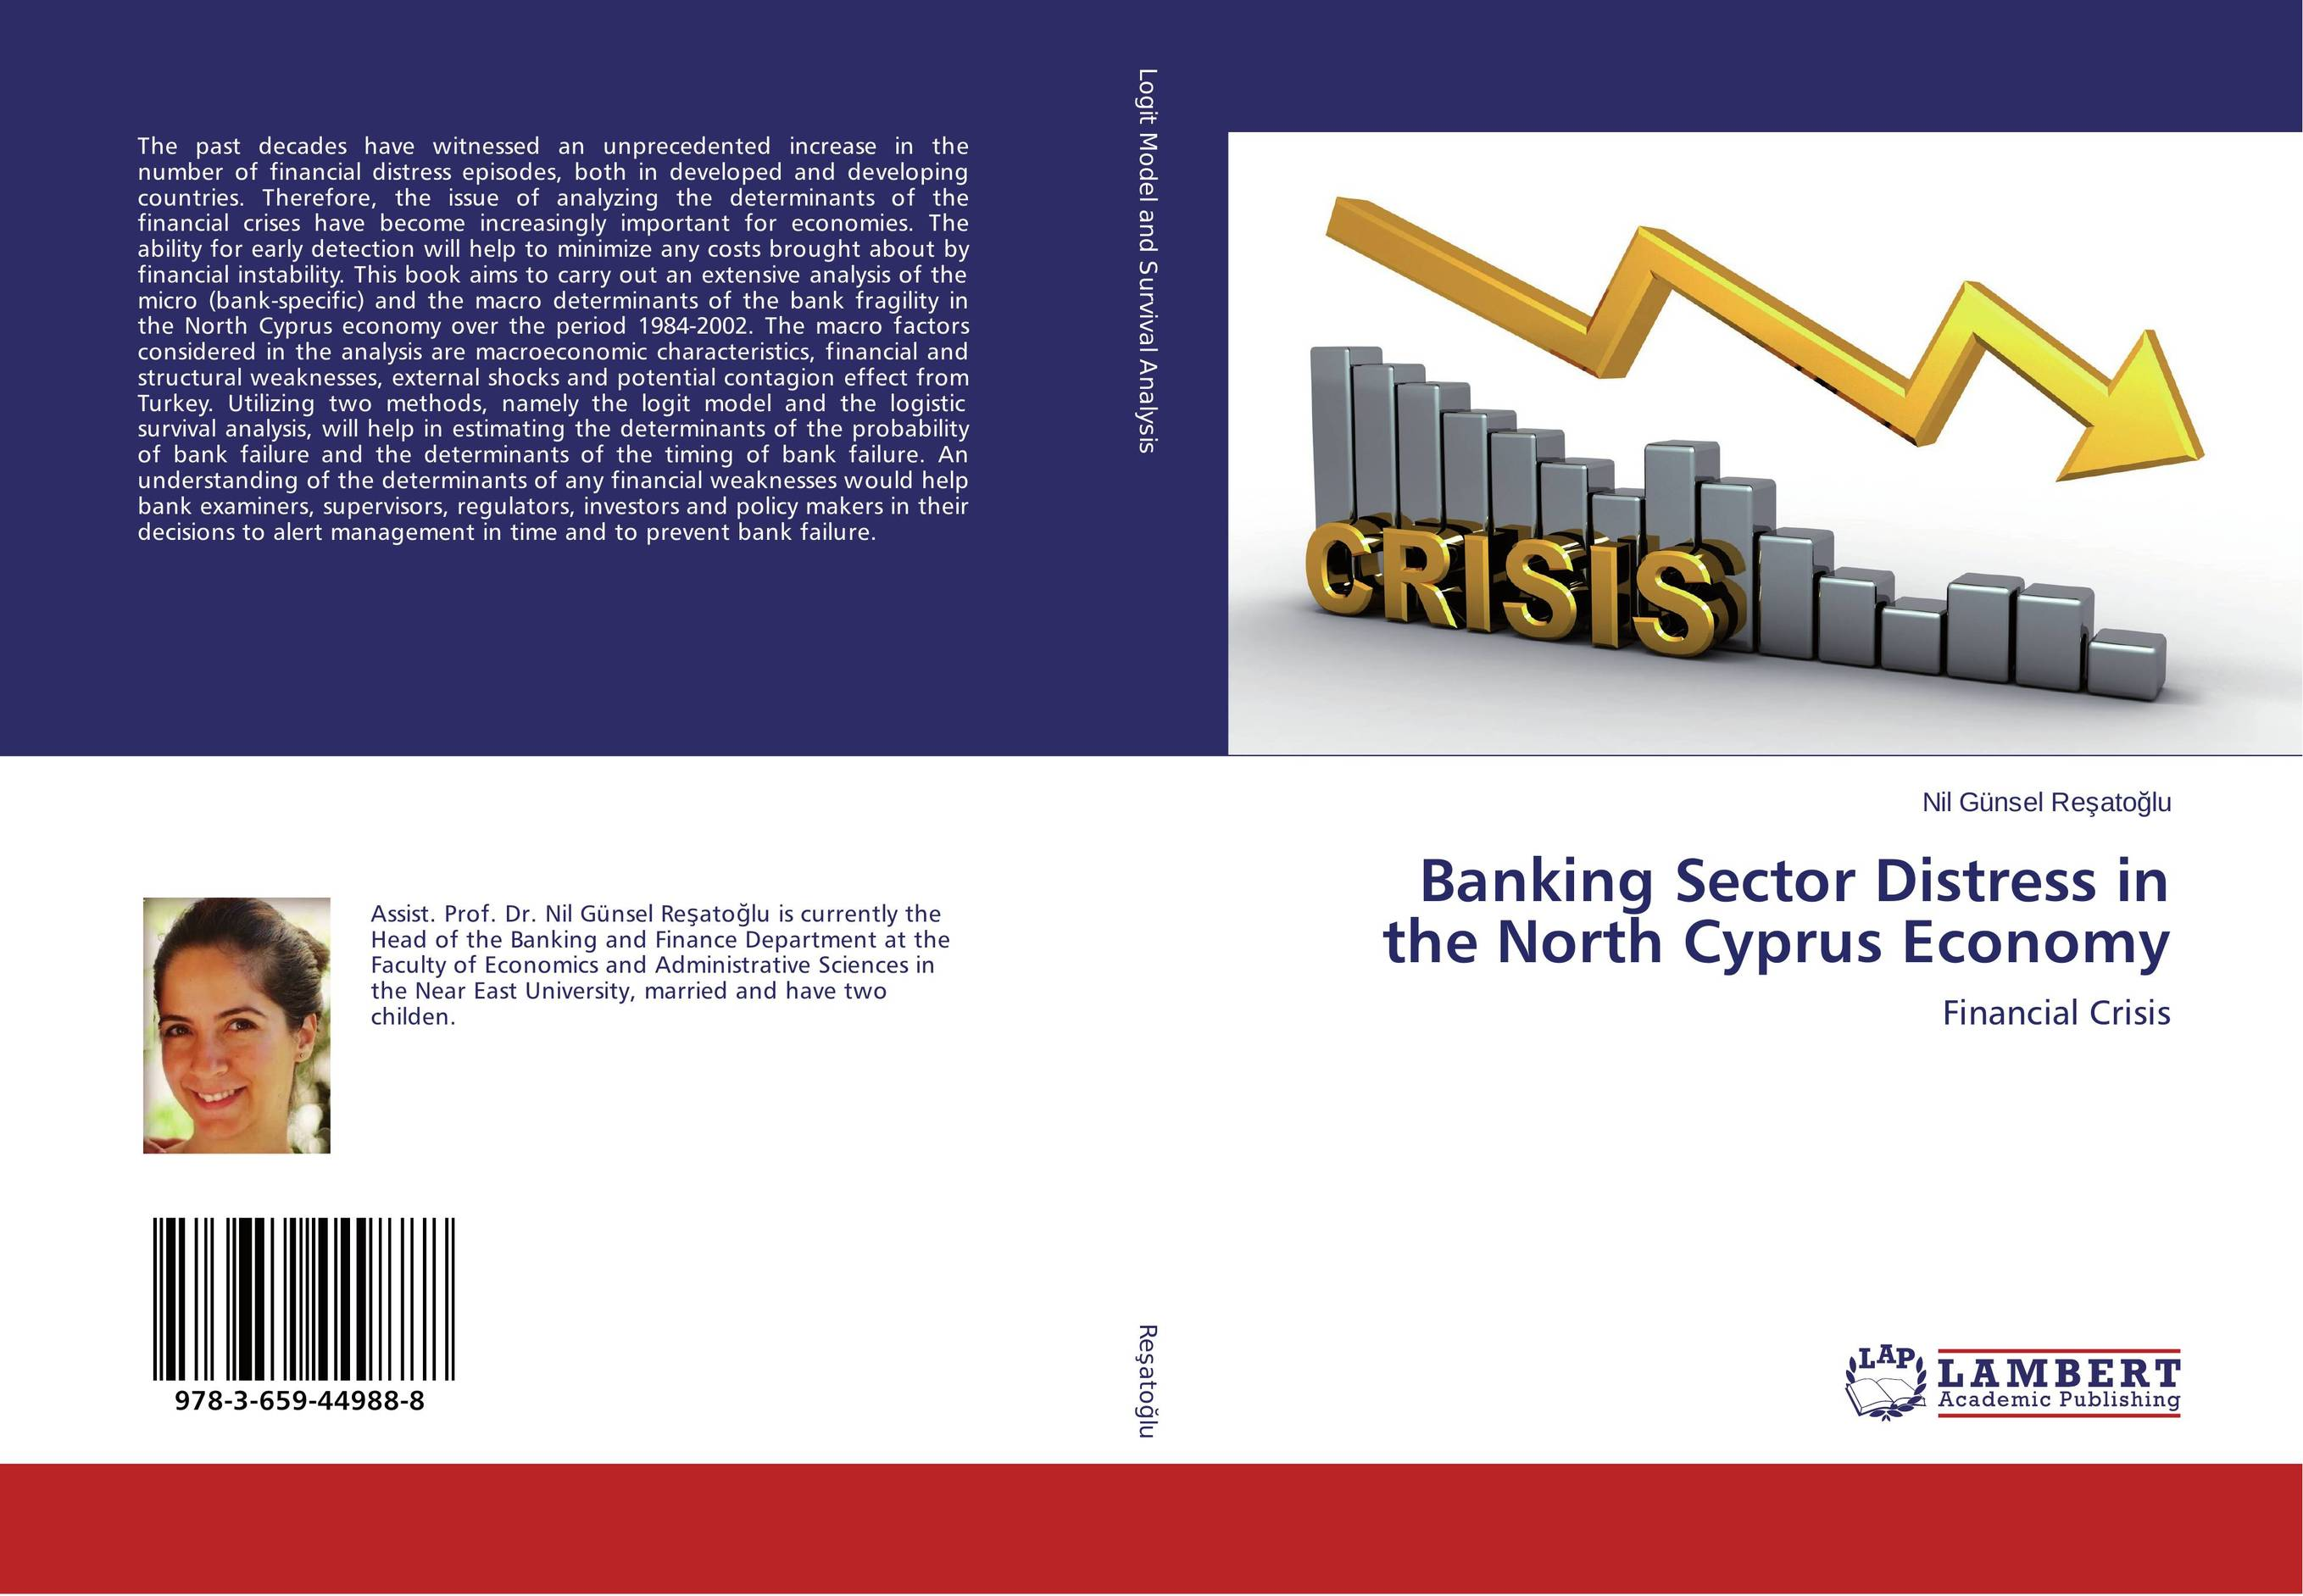 Banking Sector Distress in the North Cyprus Economy damsel in distress